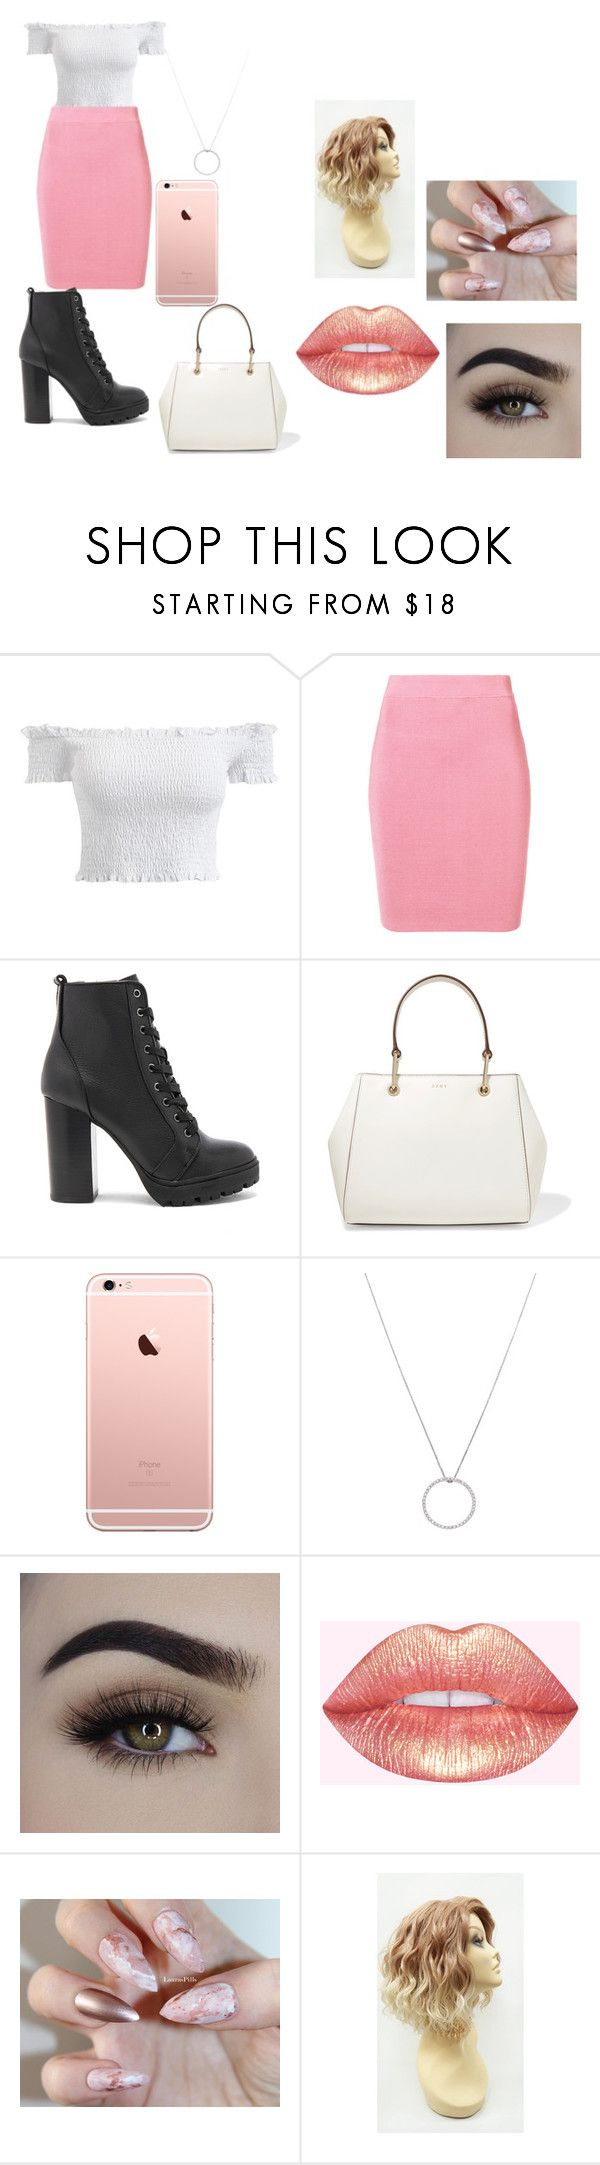 """""""Hanna PLL"""" by lauren-paul-sets ❤ liked on Polyvore featuring T By Alexander Wang, Steve Madden, DKNY, Roberto Coin, like, PrettyLittleLiars, pll and hannamarin"""